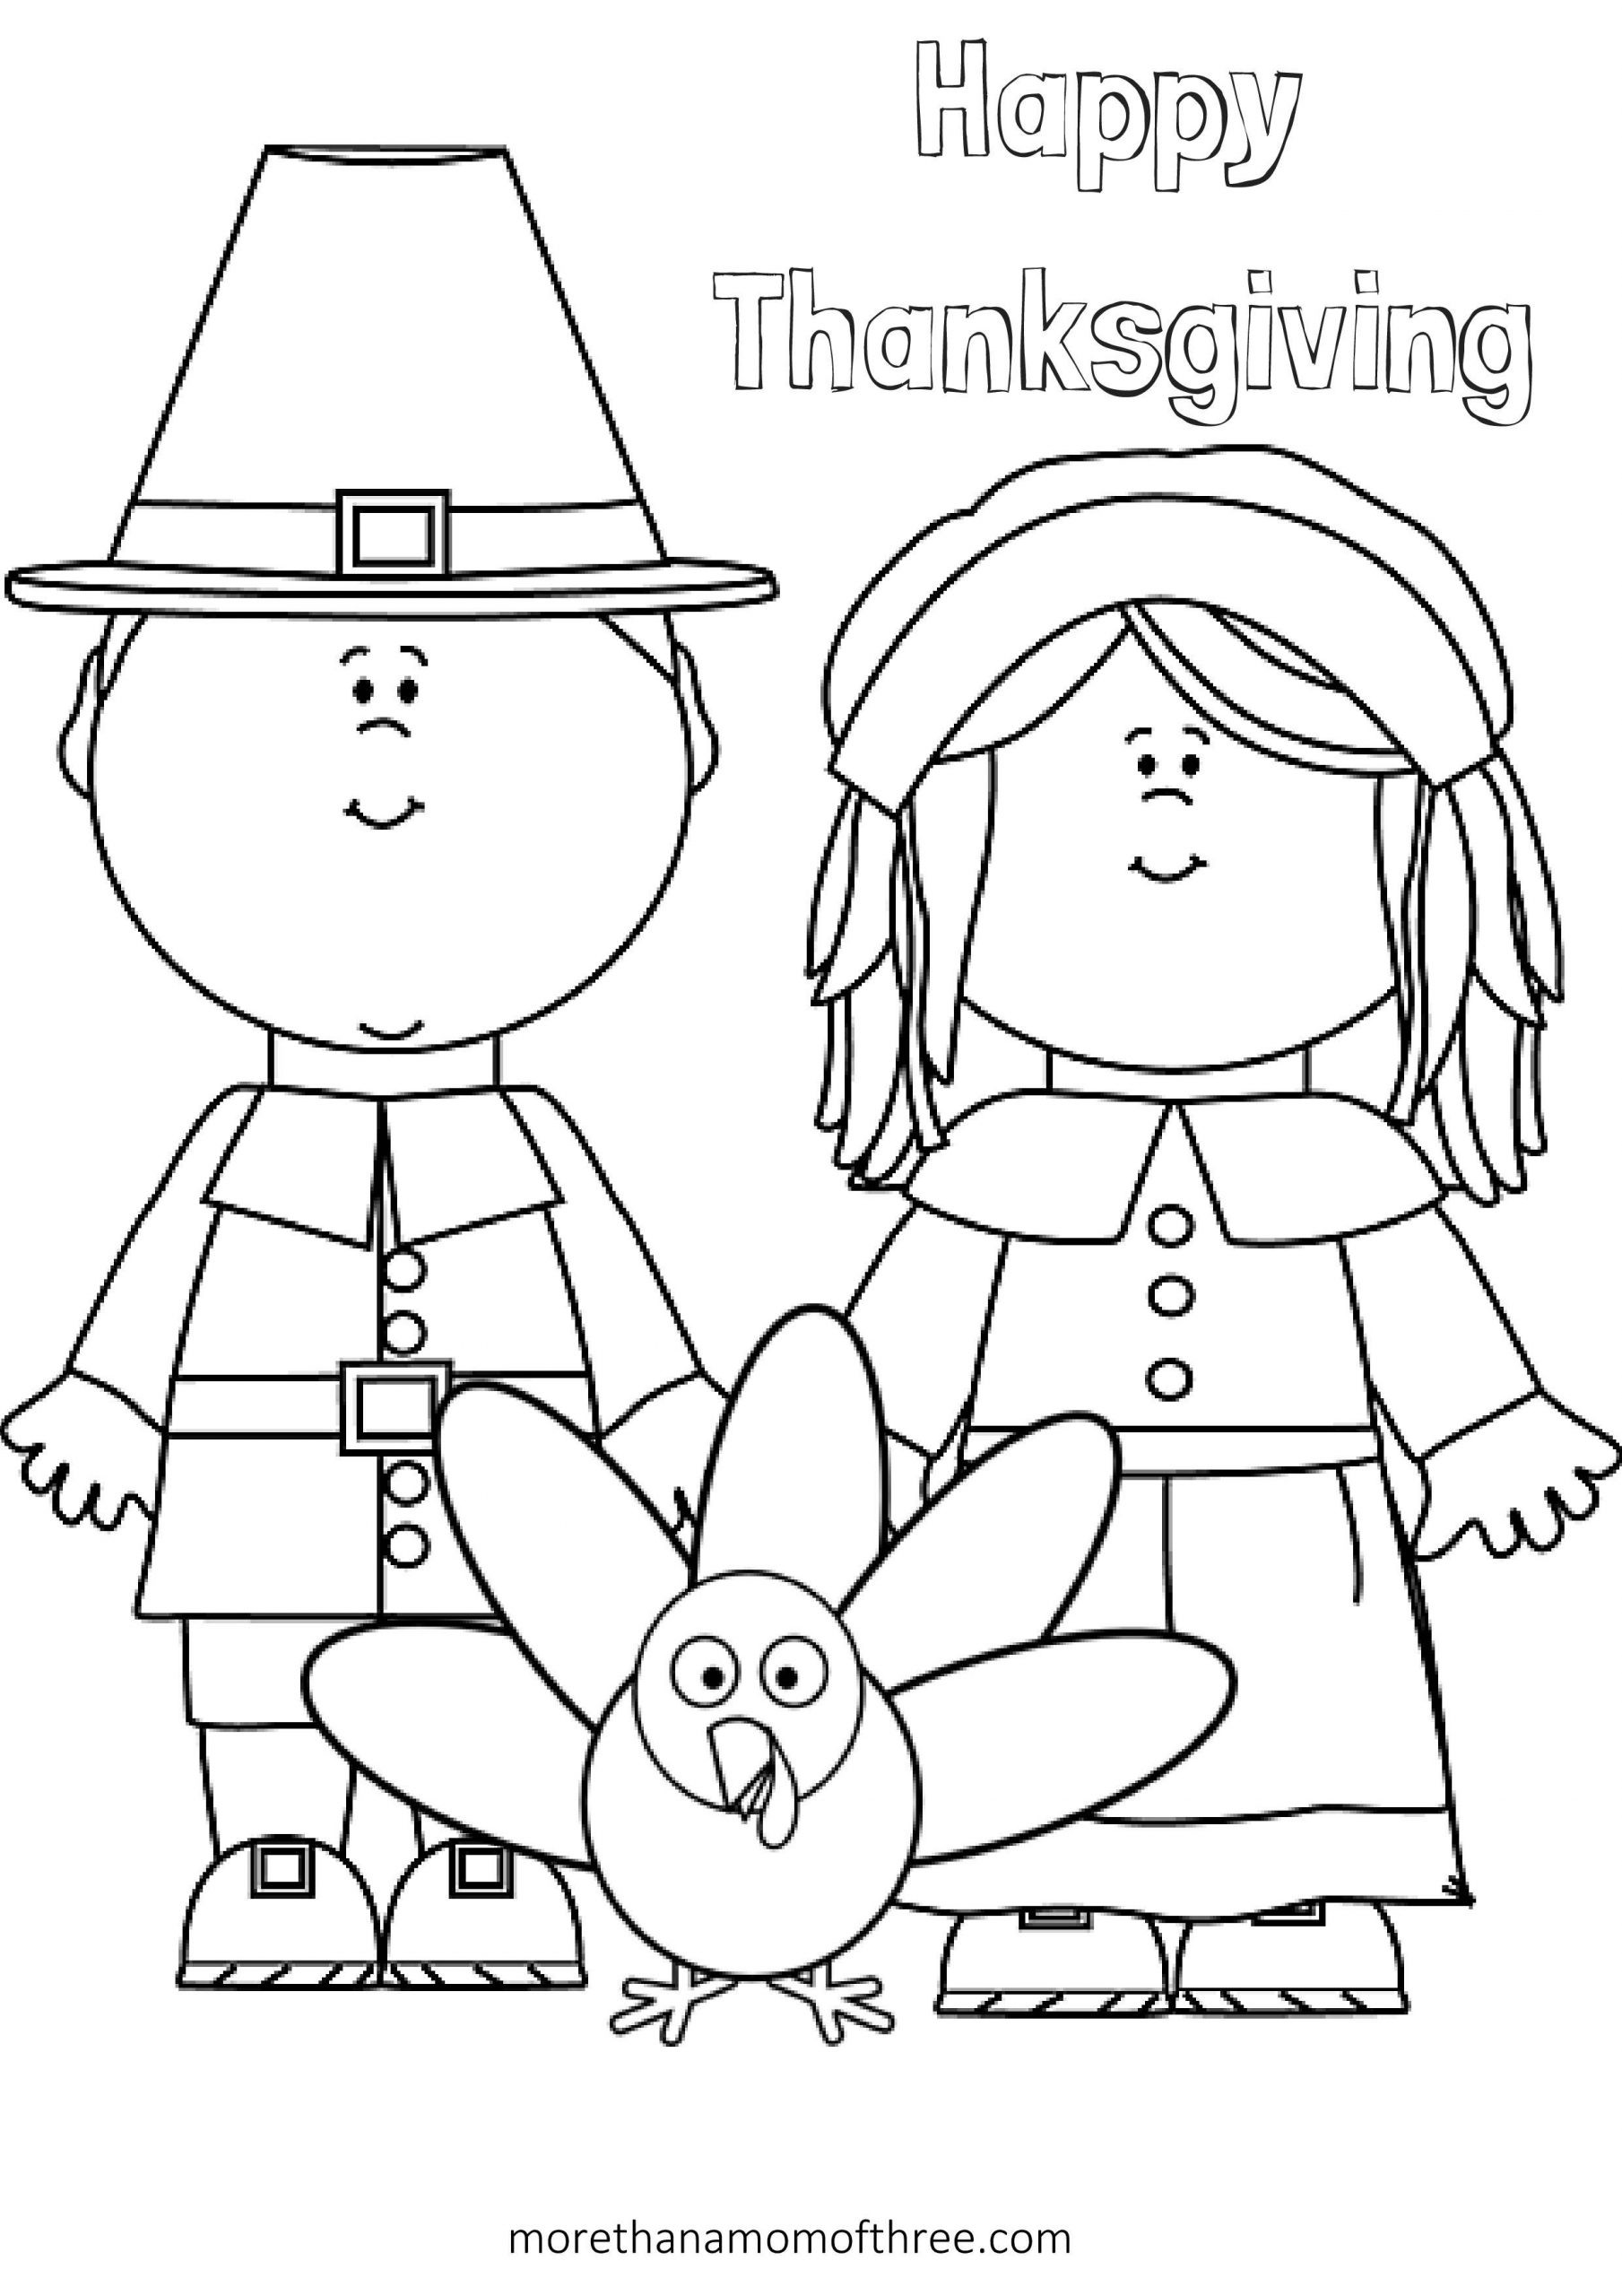 Thanksgiving Math Sheets Thanksgiving Coloring Pages Activity Printable Sheets fords